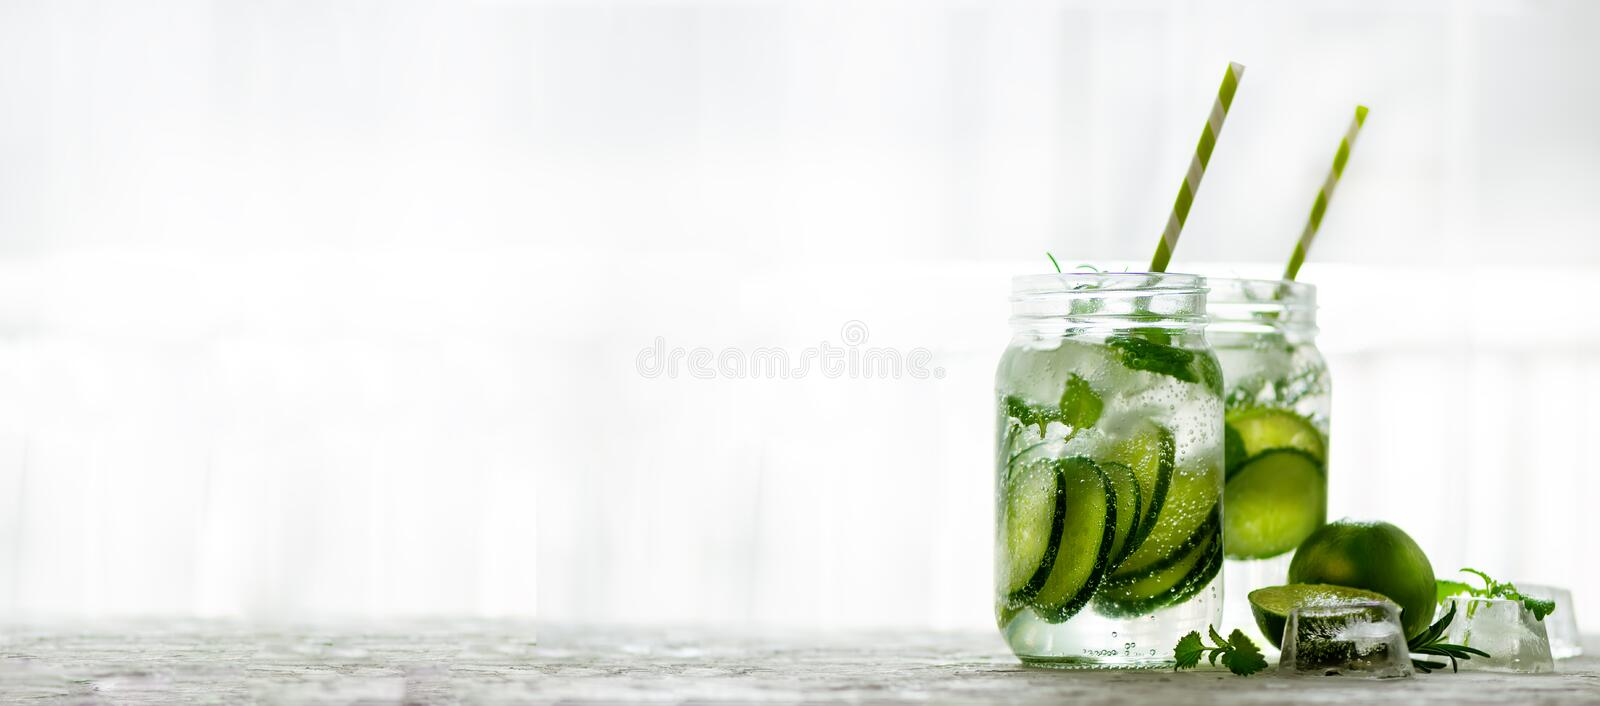 Homemade lime lemonade with cucumber, rosemary and ice, white background. Cold beverage for hot summer day. Copyspace stock image